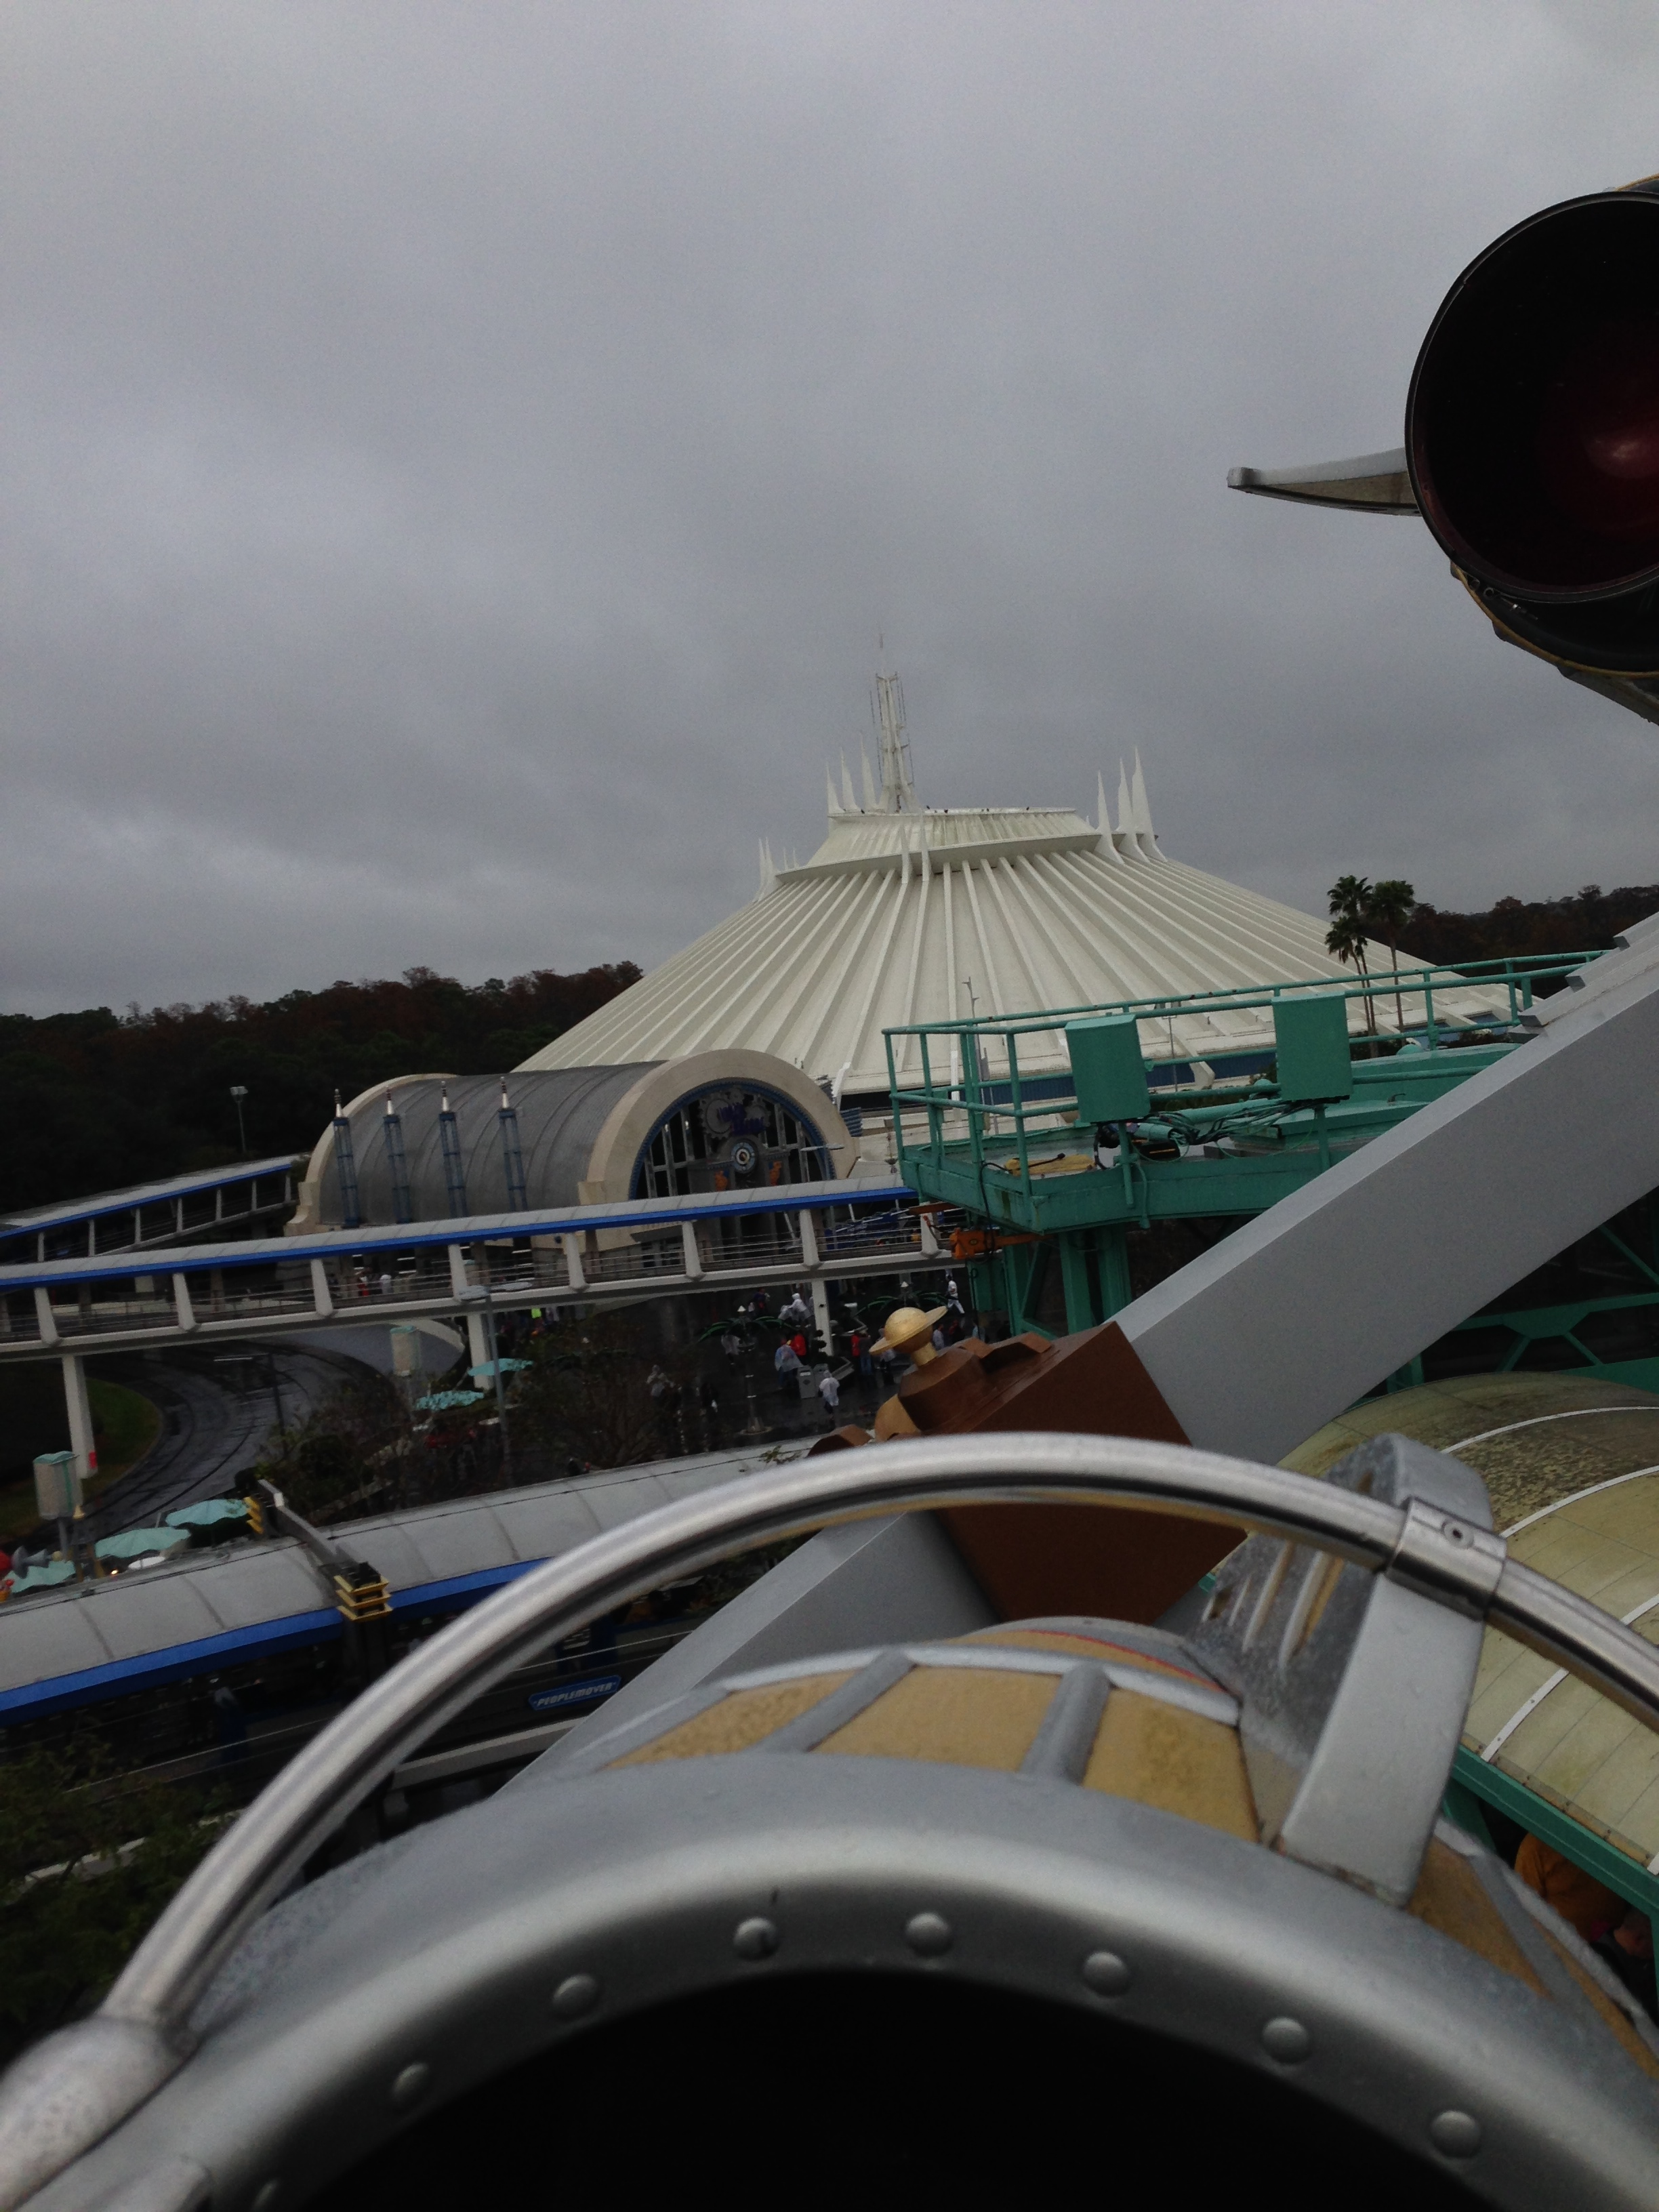 A view of Space Mountain, Charity's favorite